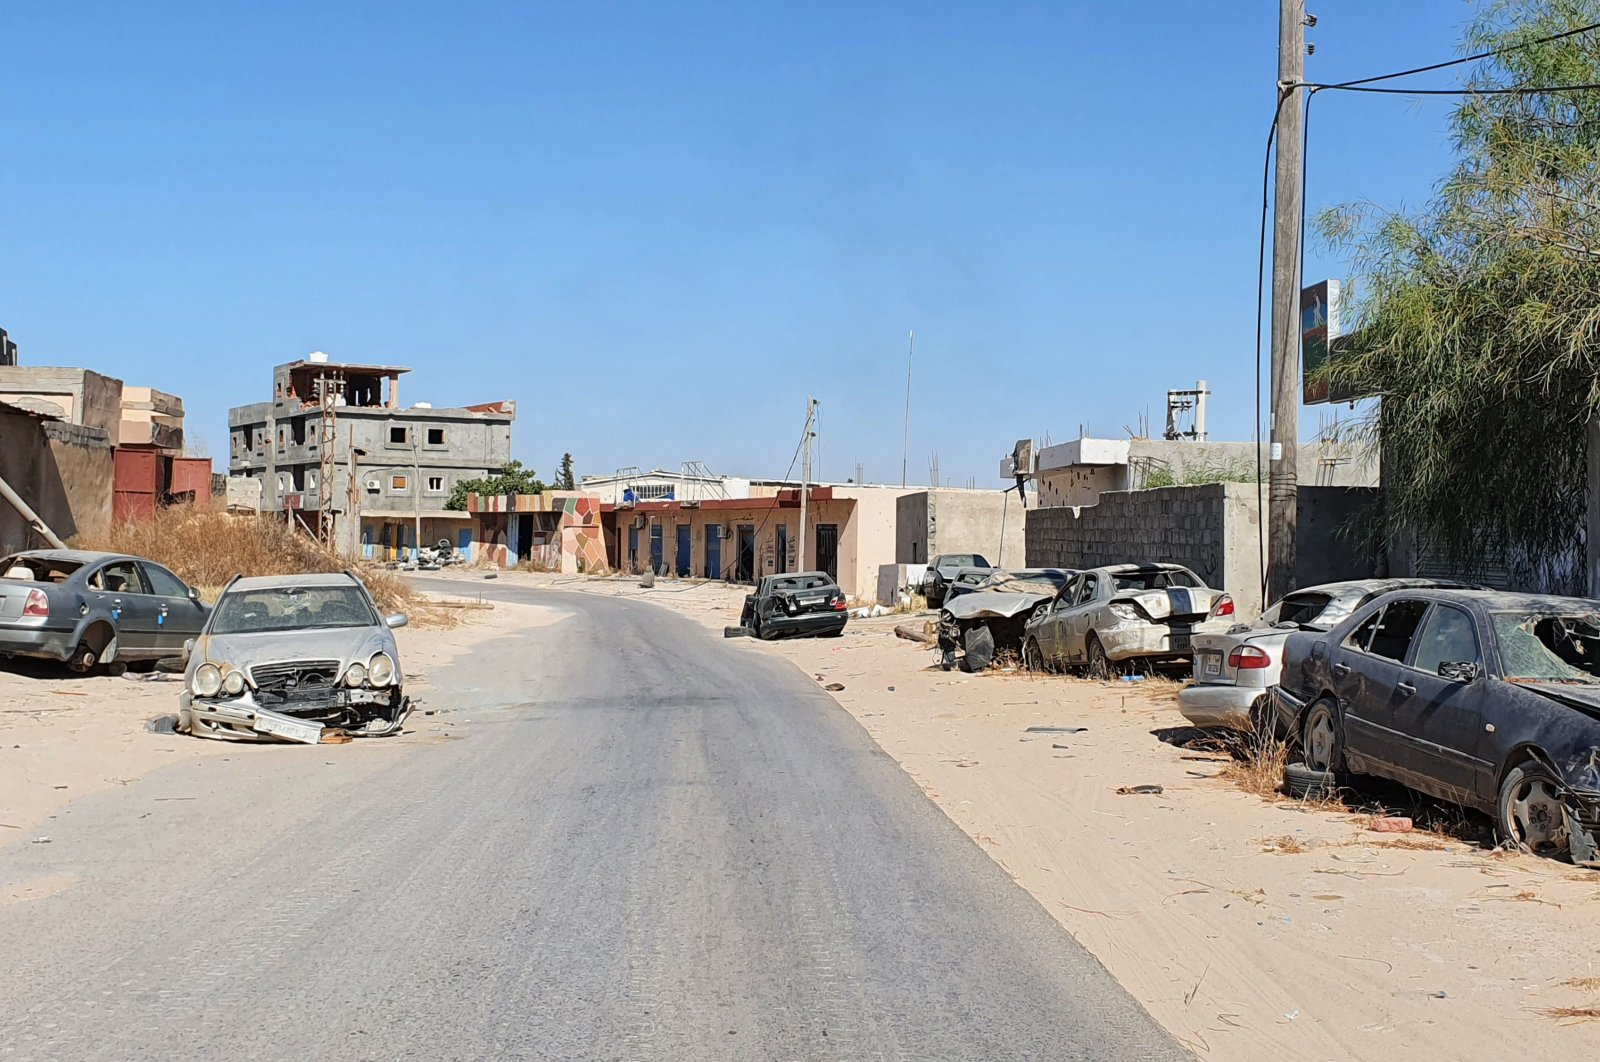 Damaged cars line a road in the Salaheddin district south of the Libyan capital Tripoli, June 21, 2020. (AFP Photo)